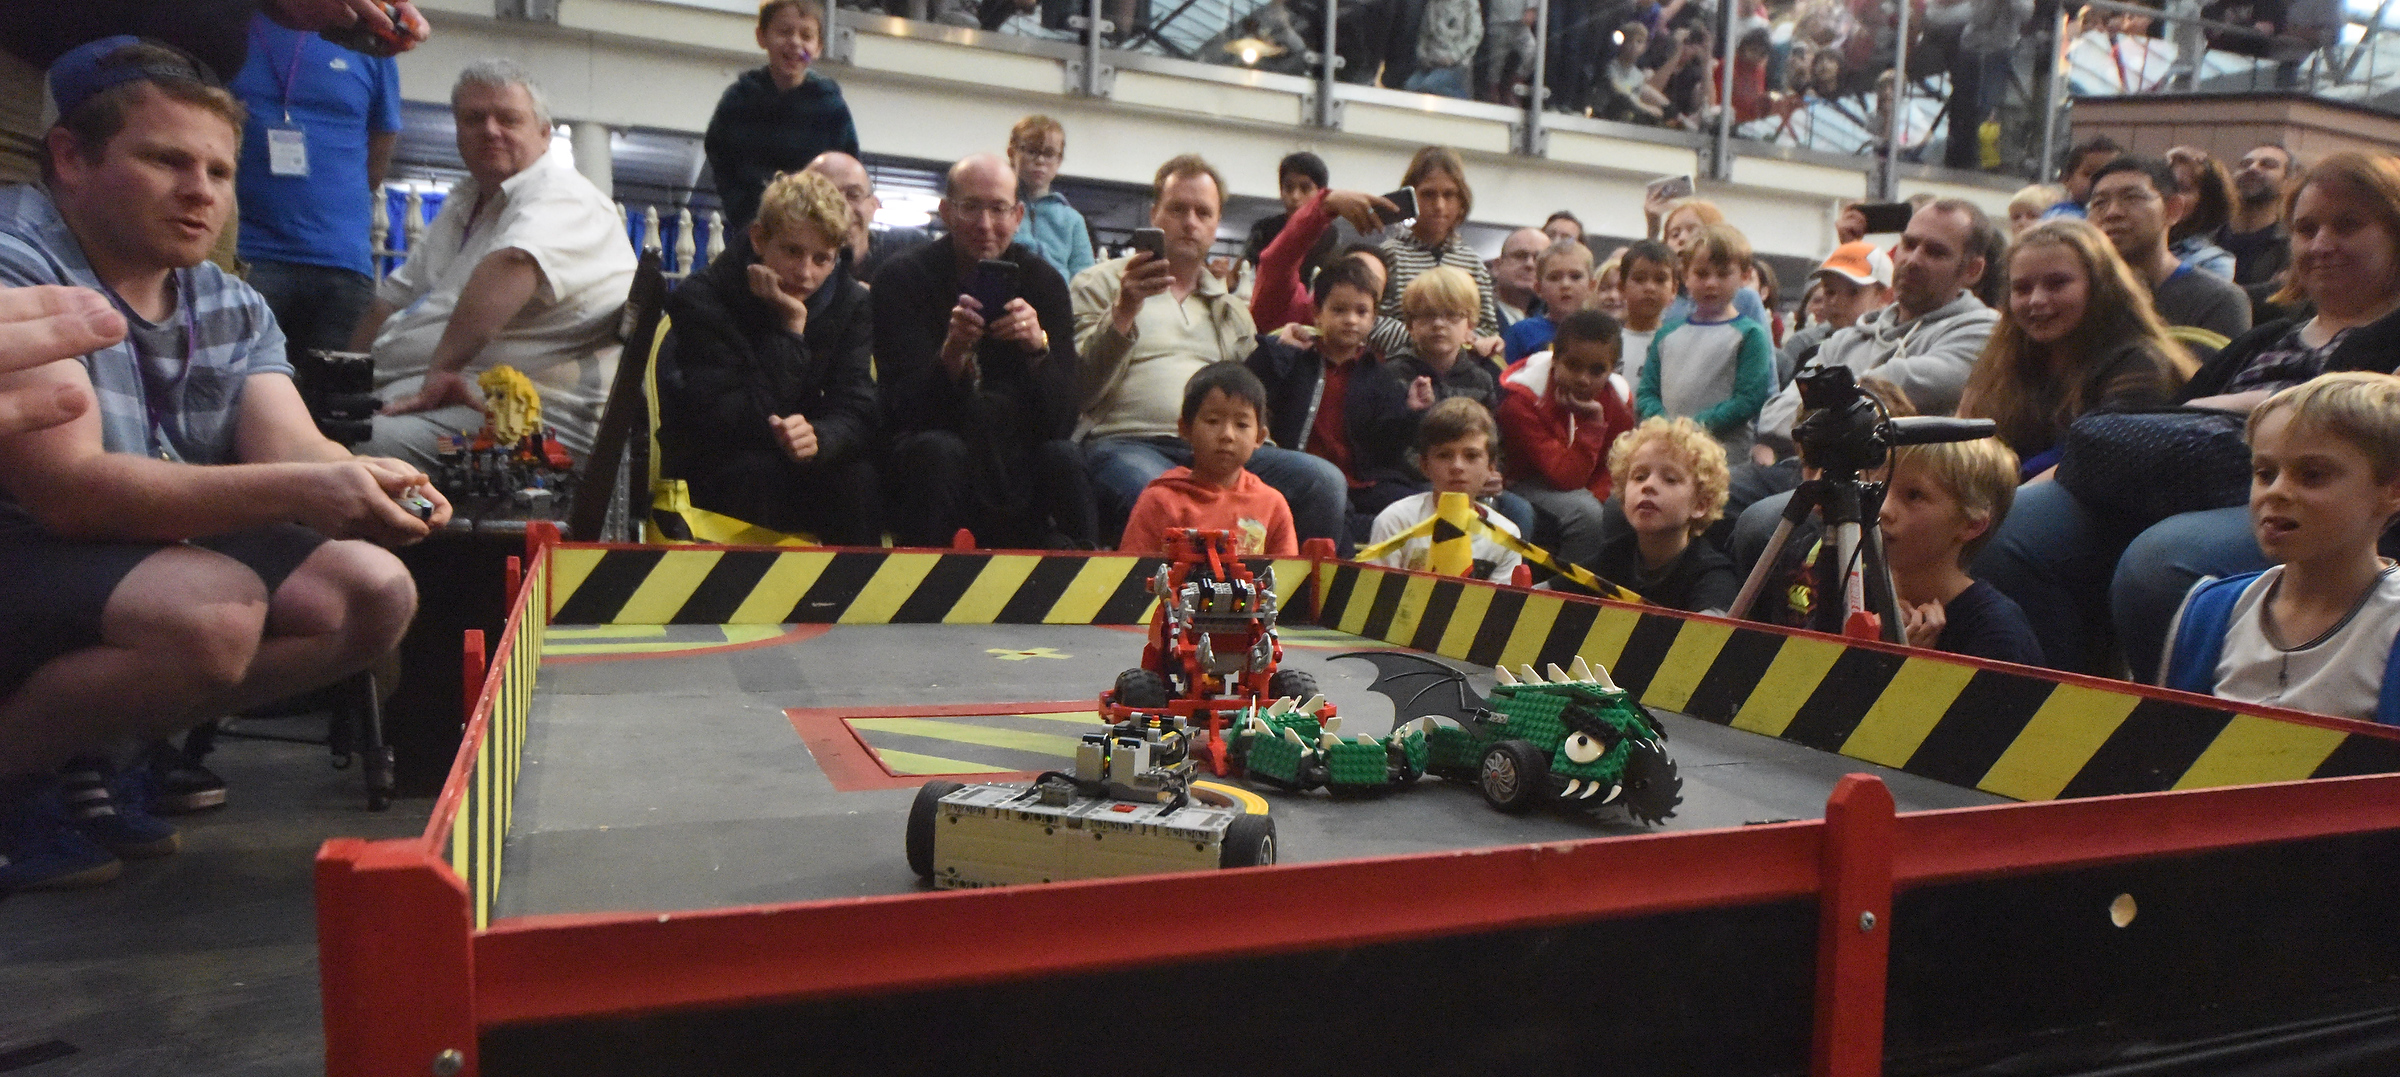 Brick-tacular displays bring out the crowds for the Great Western Brick Show